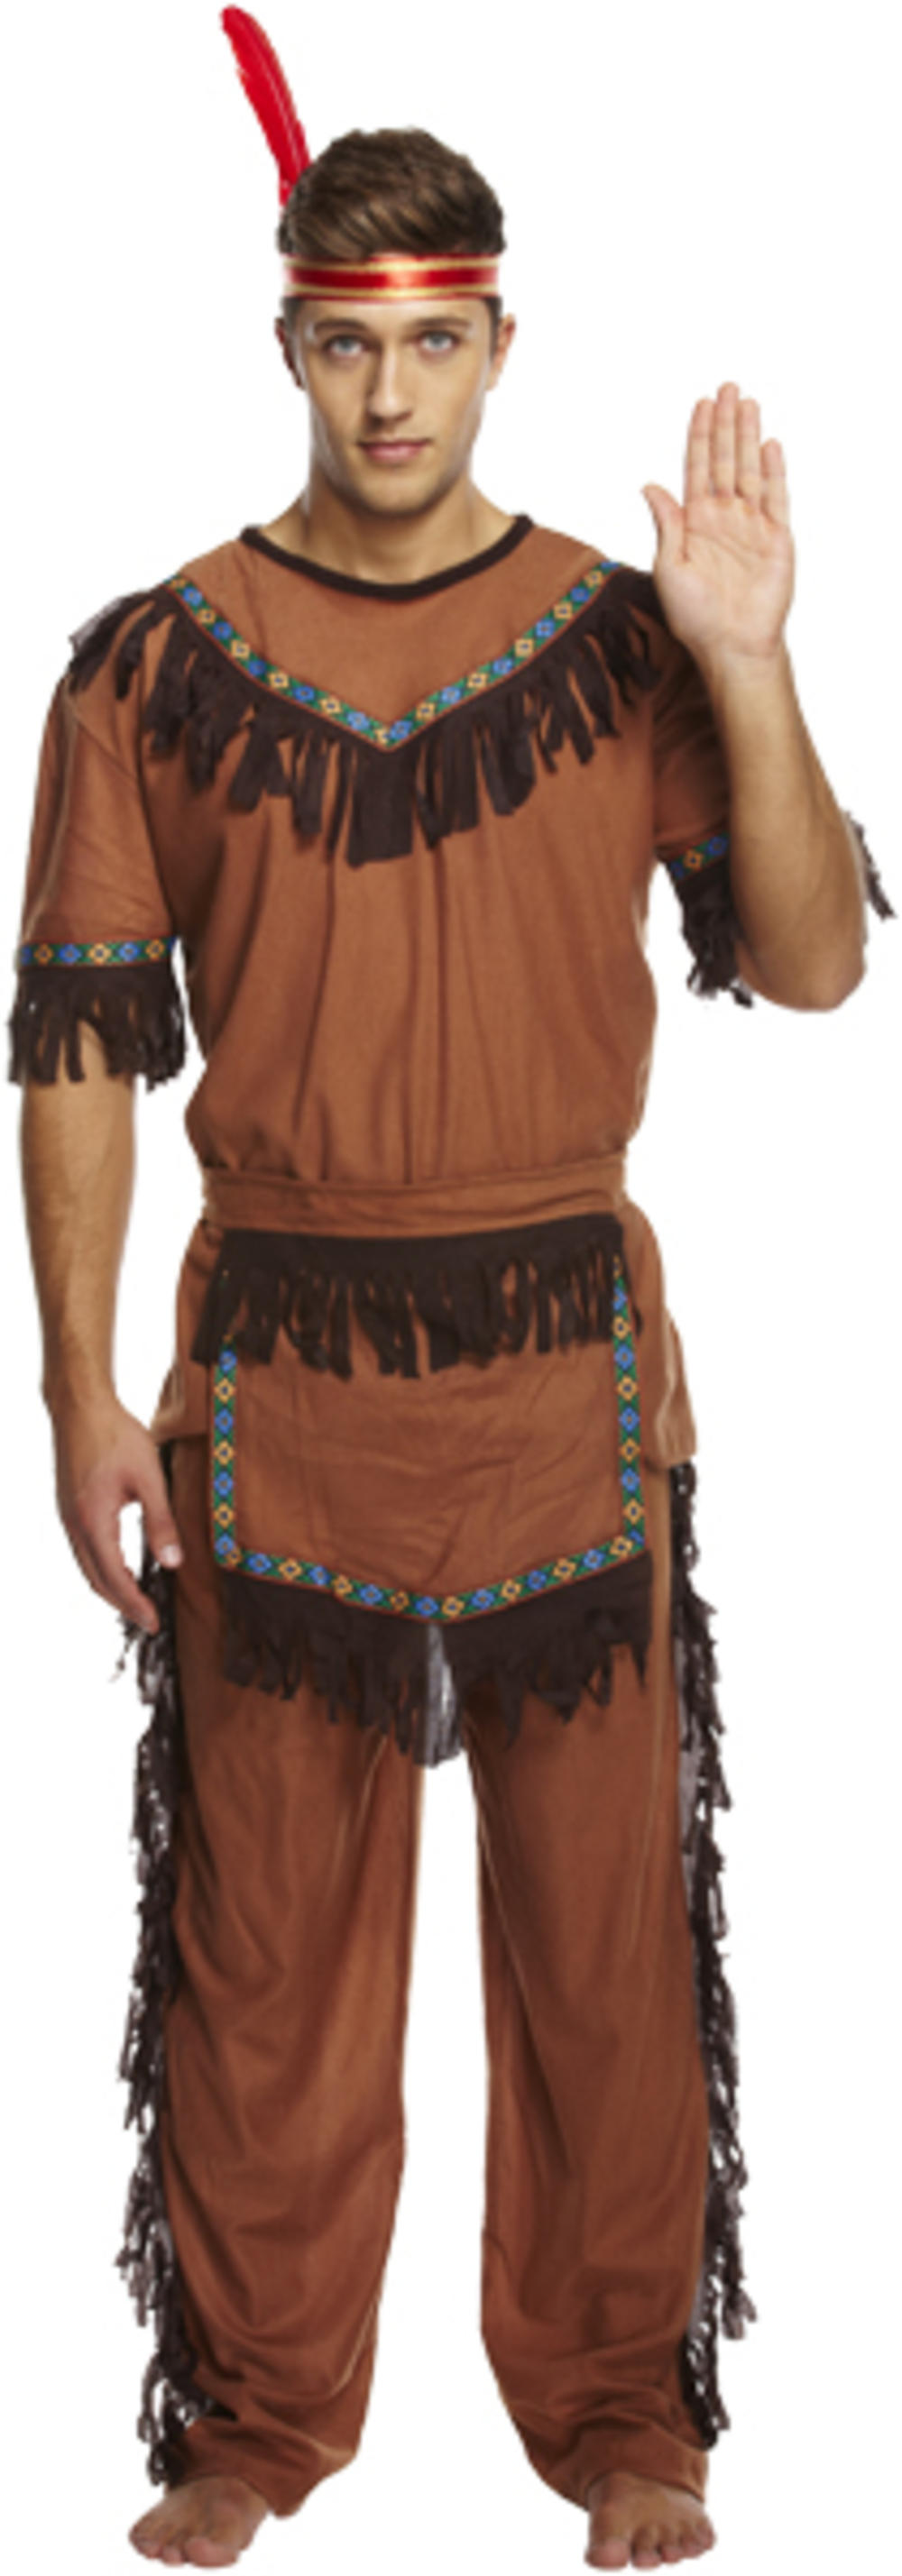 Red Indian Costume